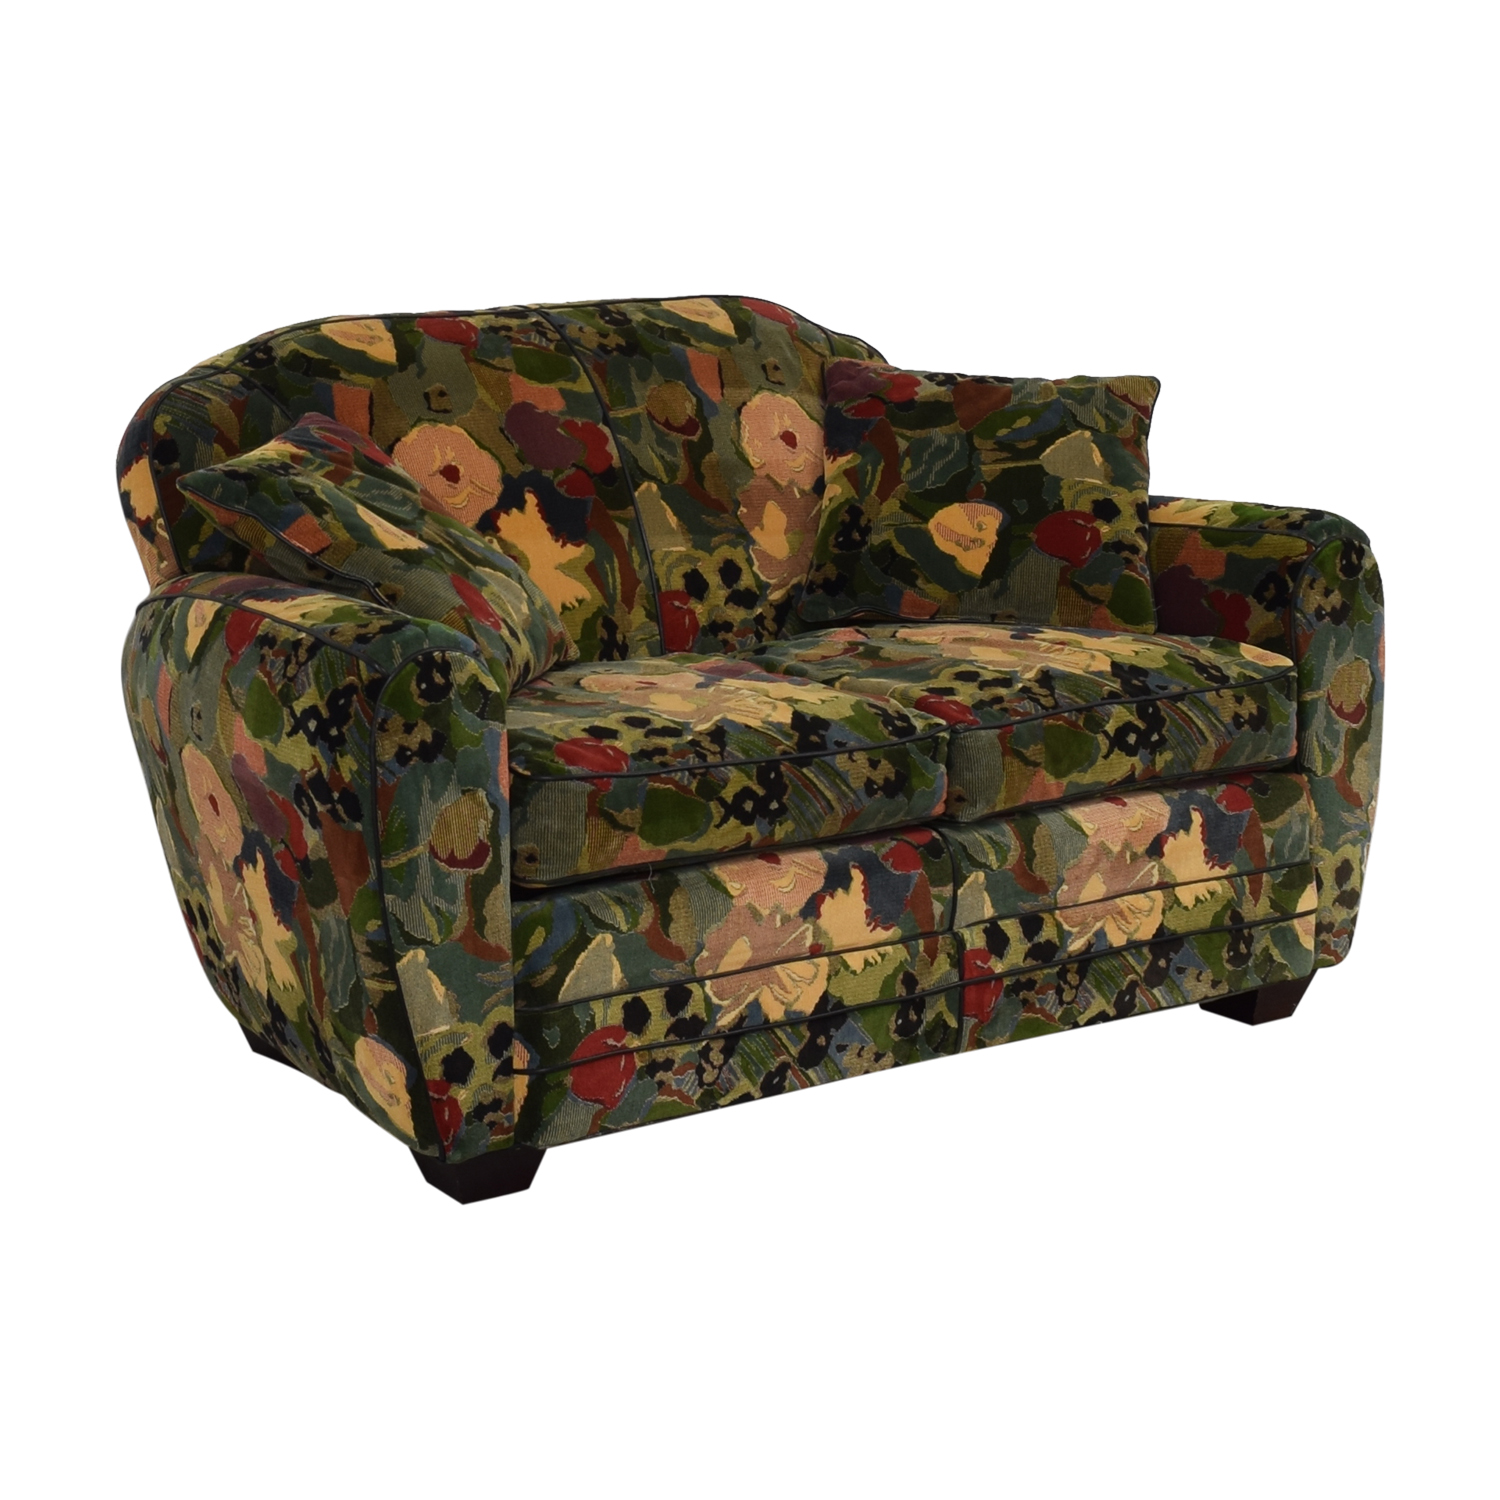 buy Old Hickory Tannery Floral Loveseat Old Hickory Tannery Loveseats